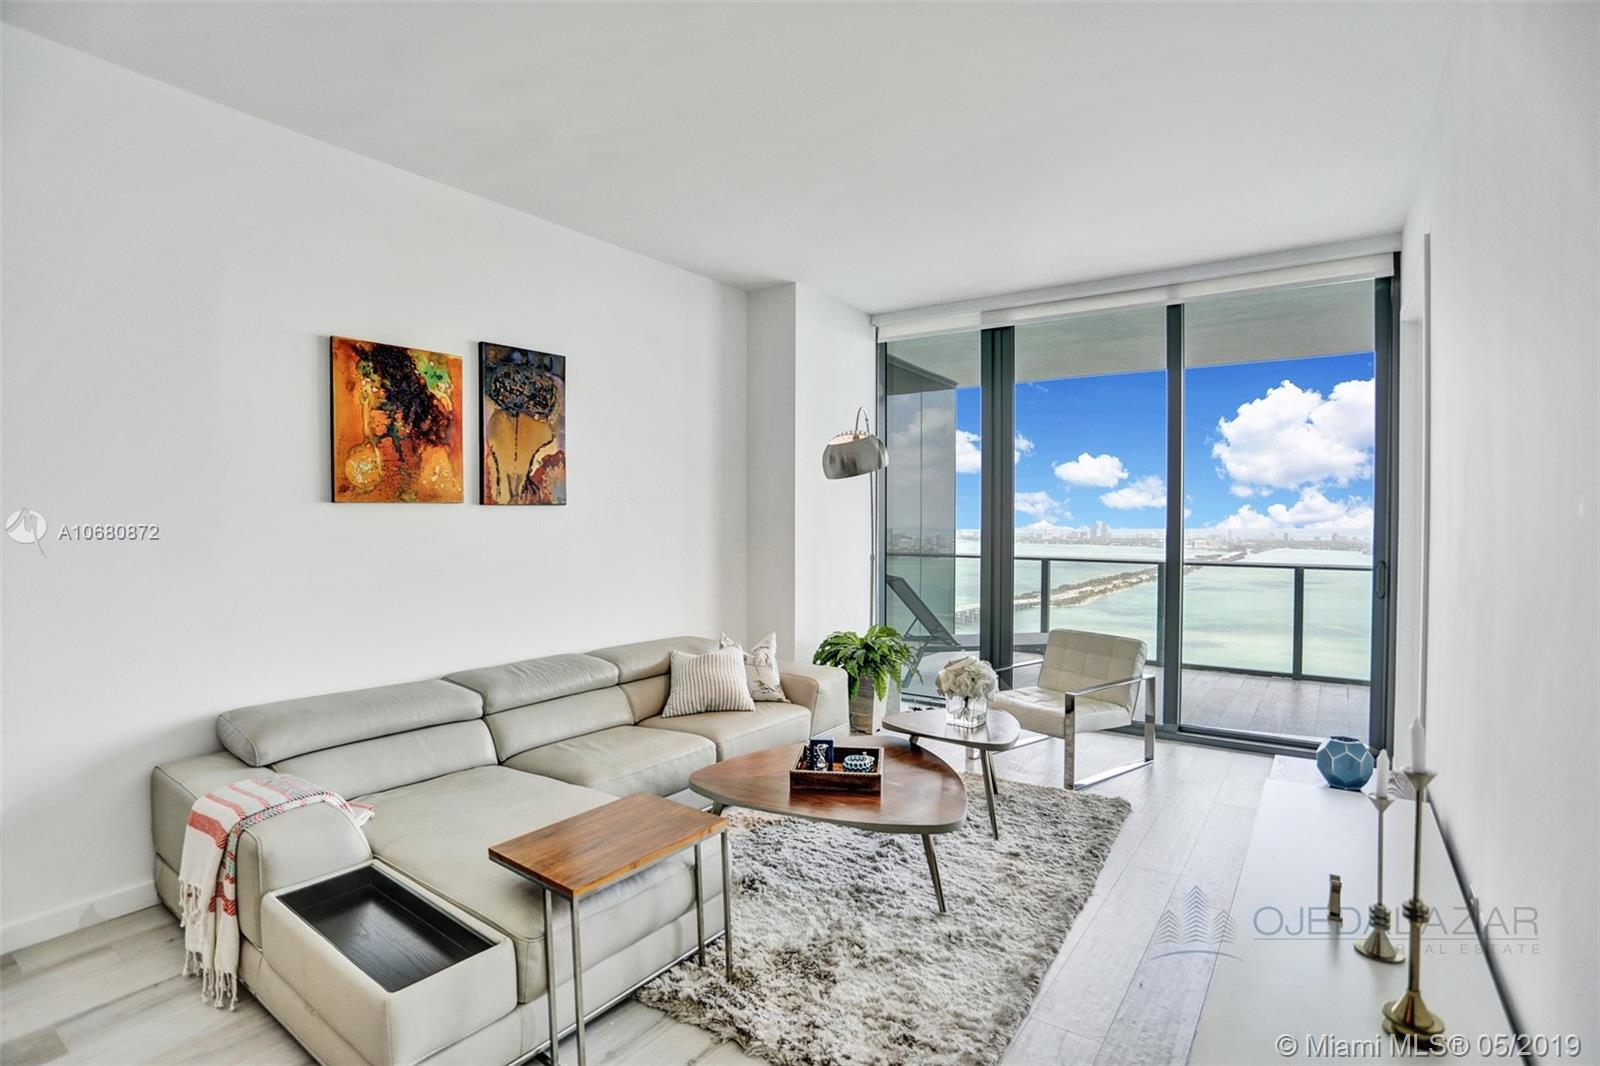 480 NE 31 #4604 Property Photo - Miami, FL real estate listing